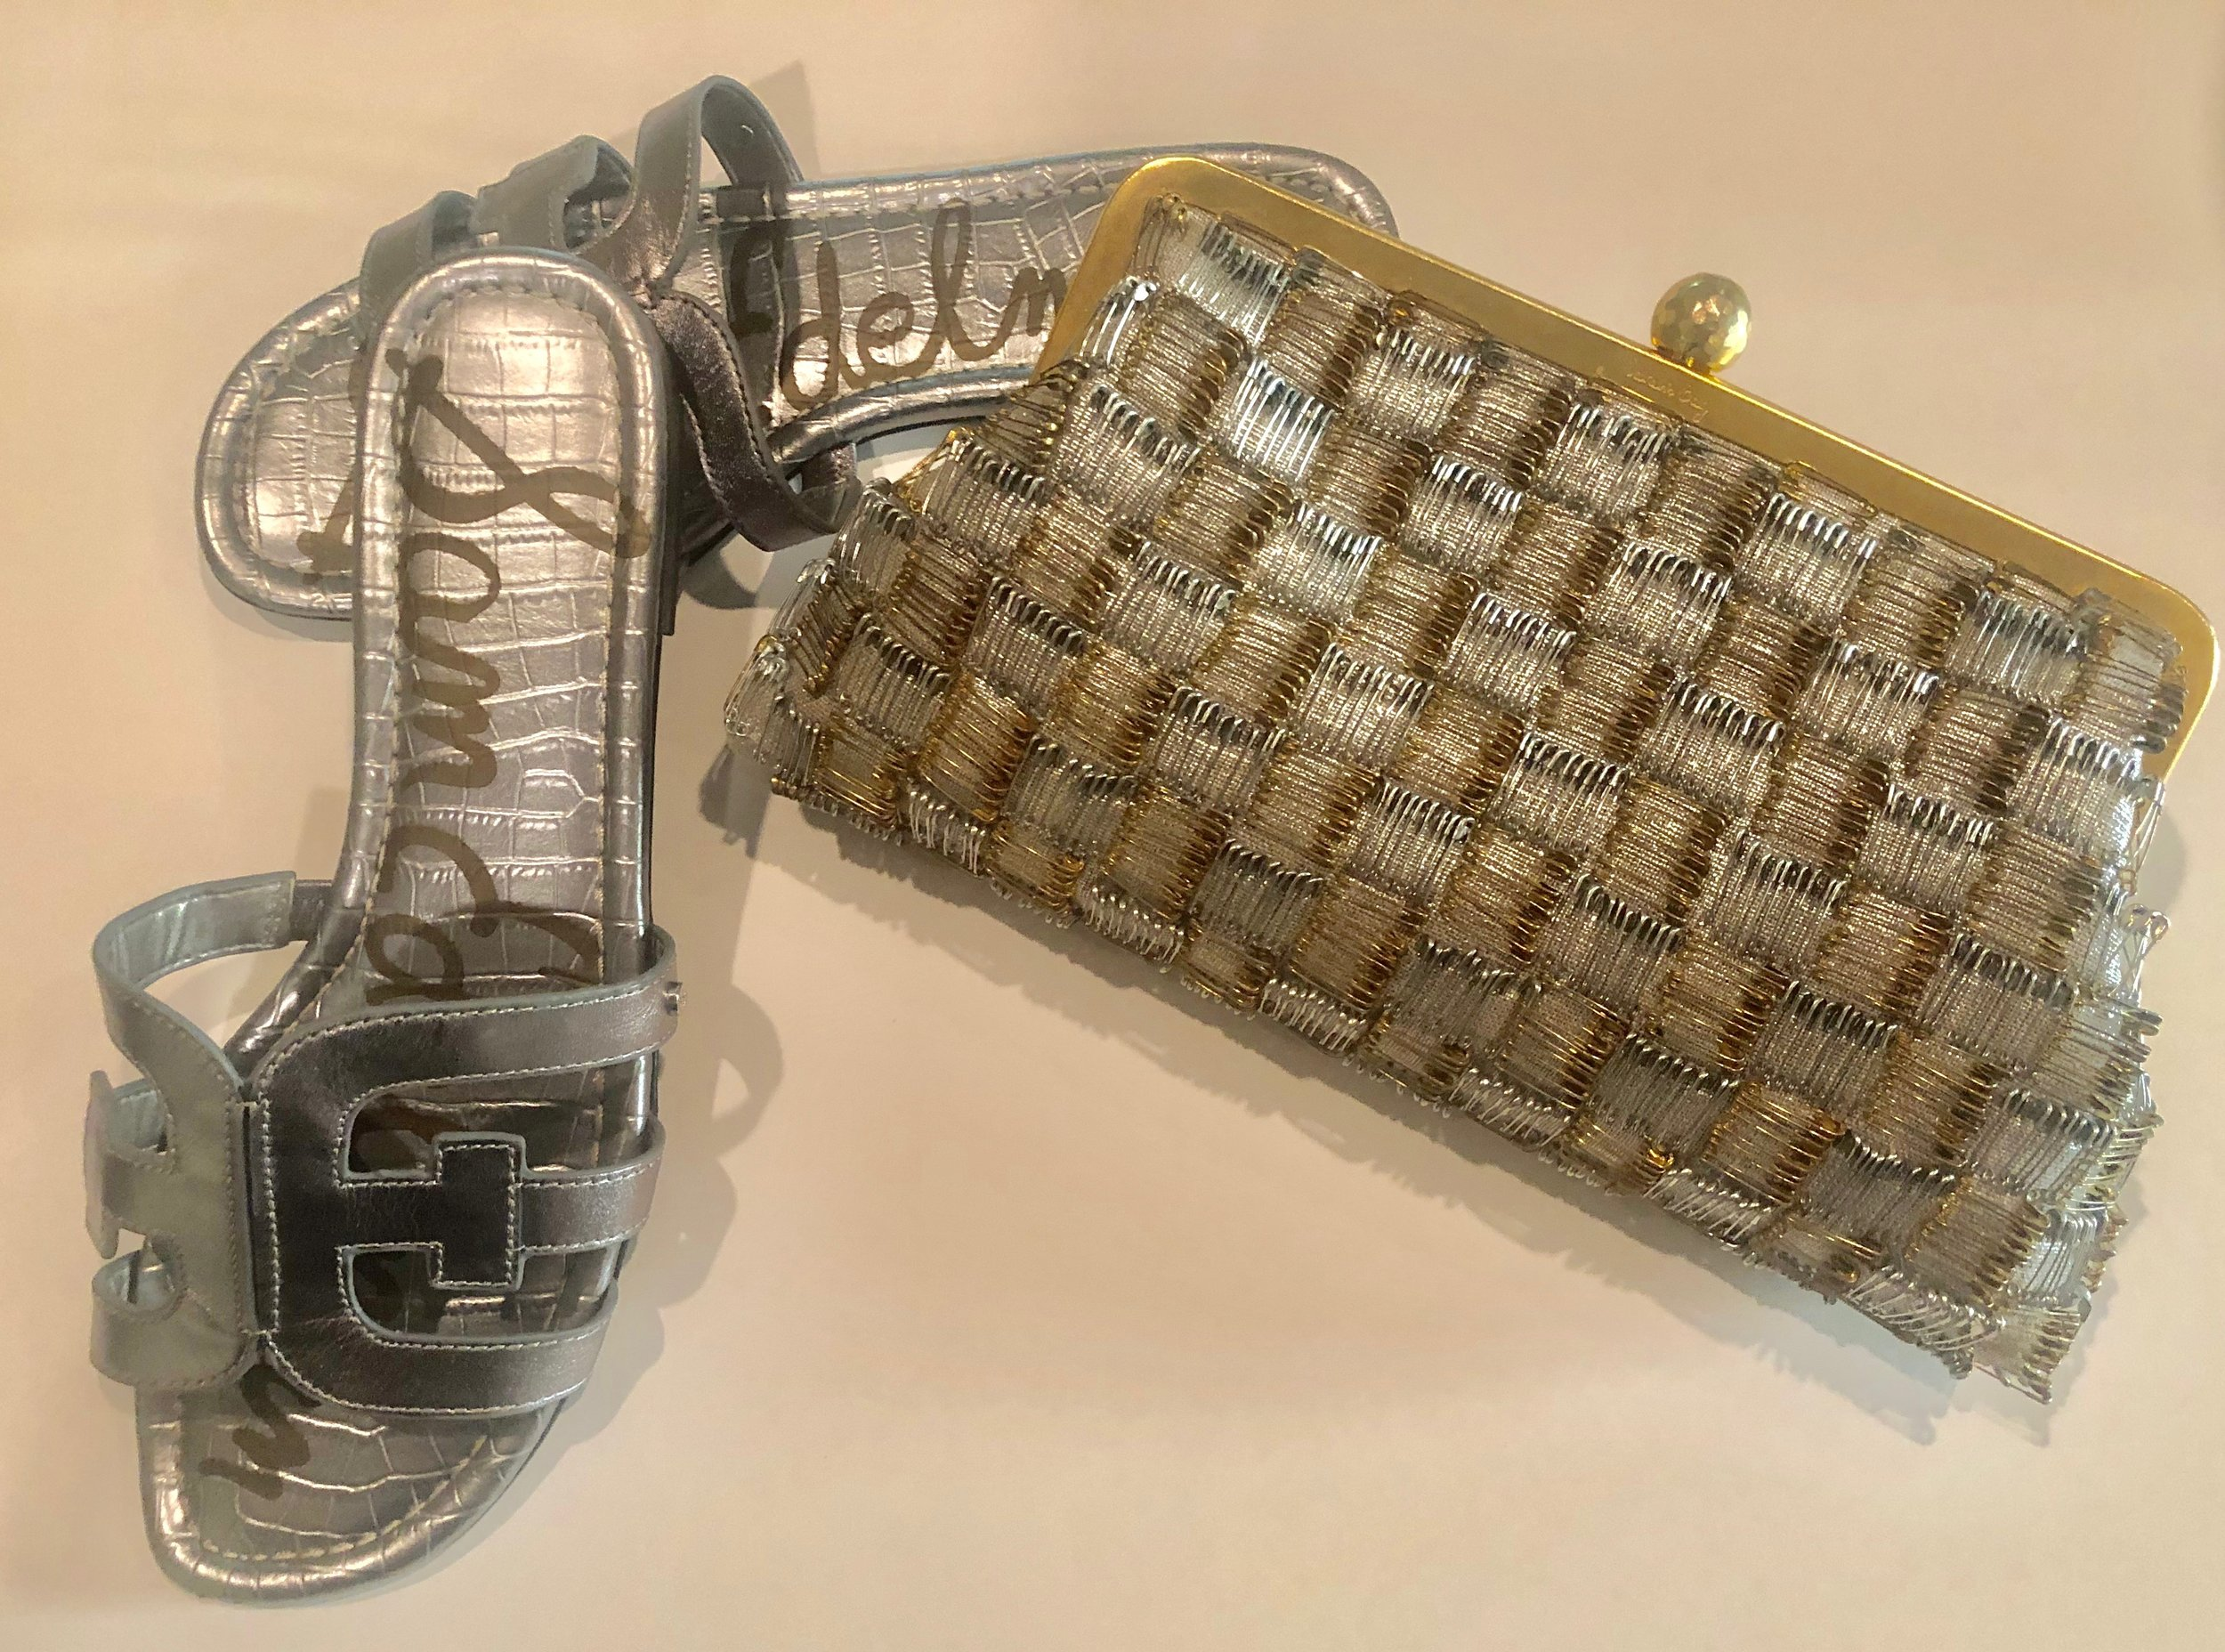 My Sam Edelman slides in silver. Also shown is my safety pin clutch by Sarahs Bag (this bag also owned by Amal Clooney) found  HERE. Its a work of accessory art made of tiny gold and silver safety pins